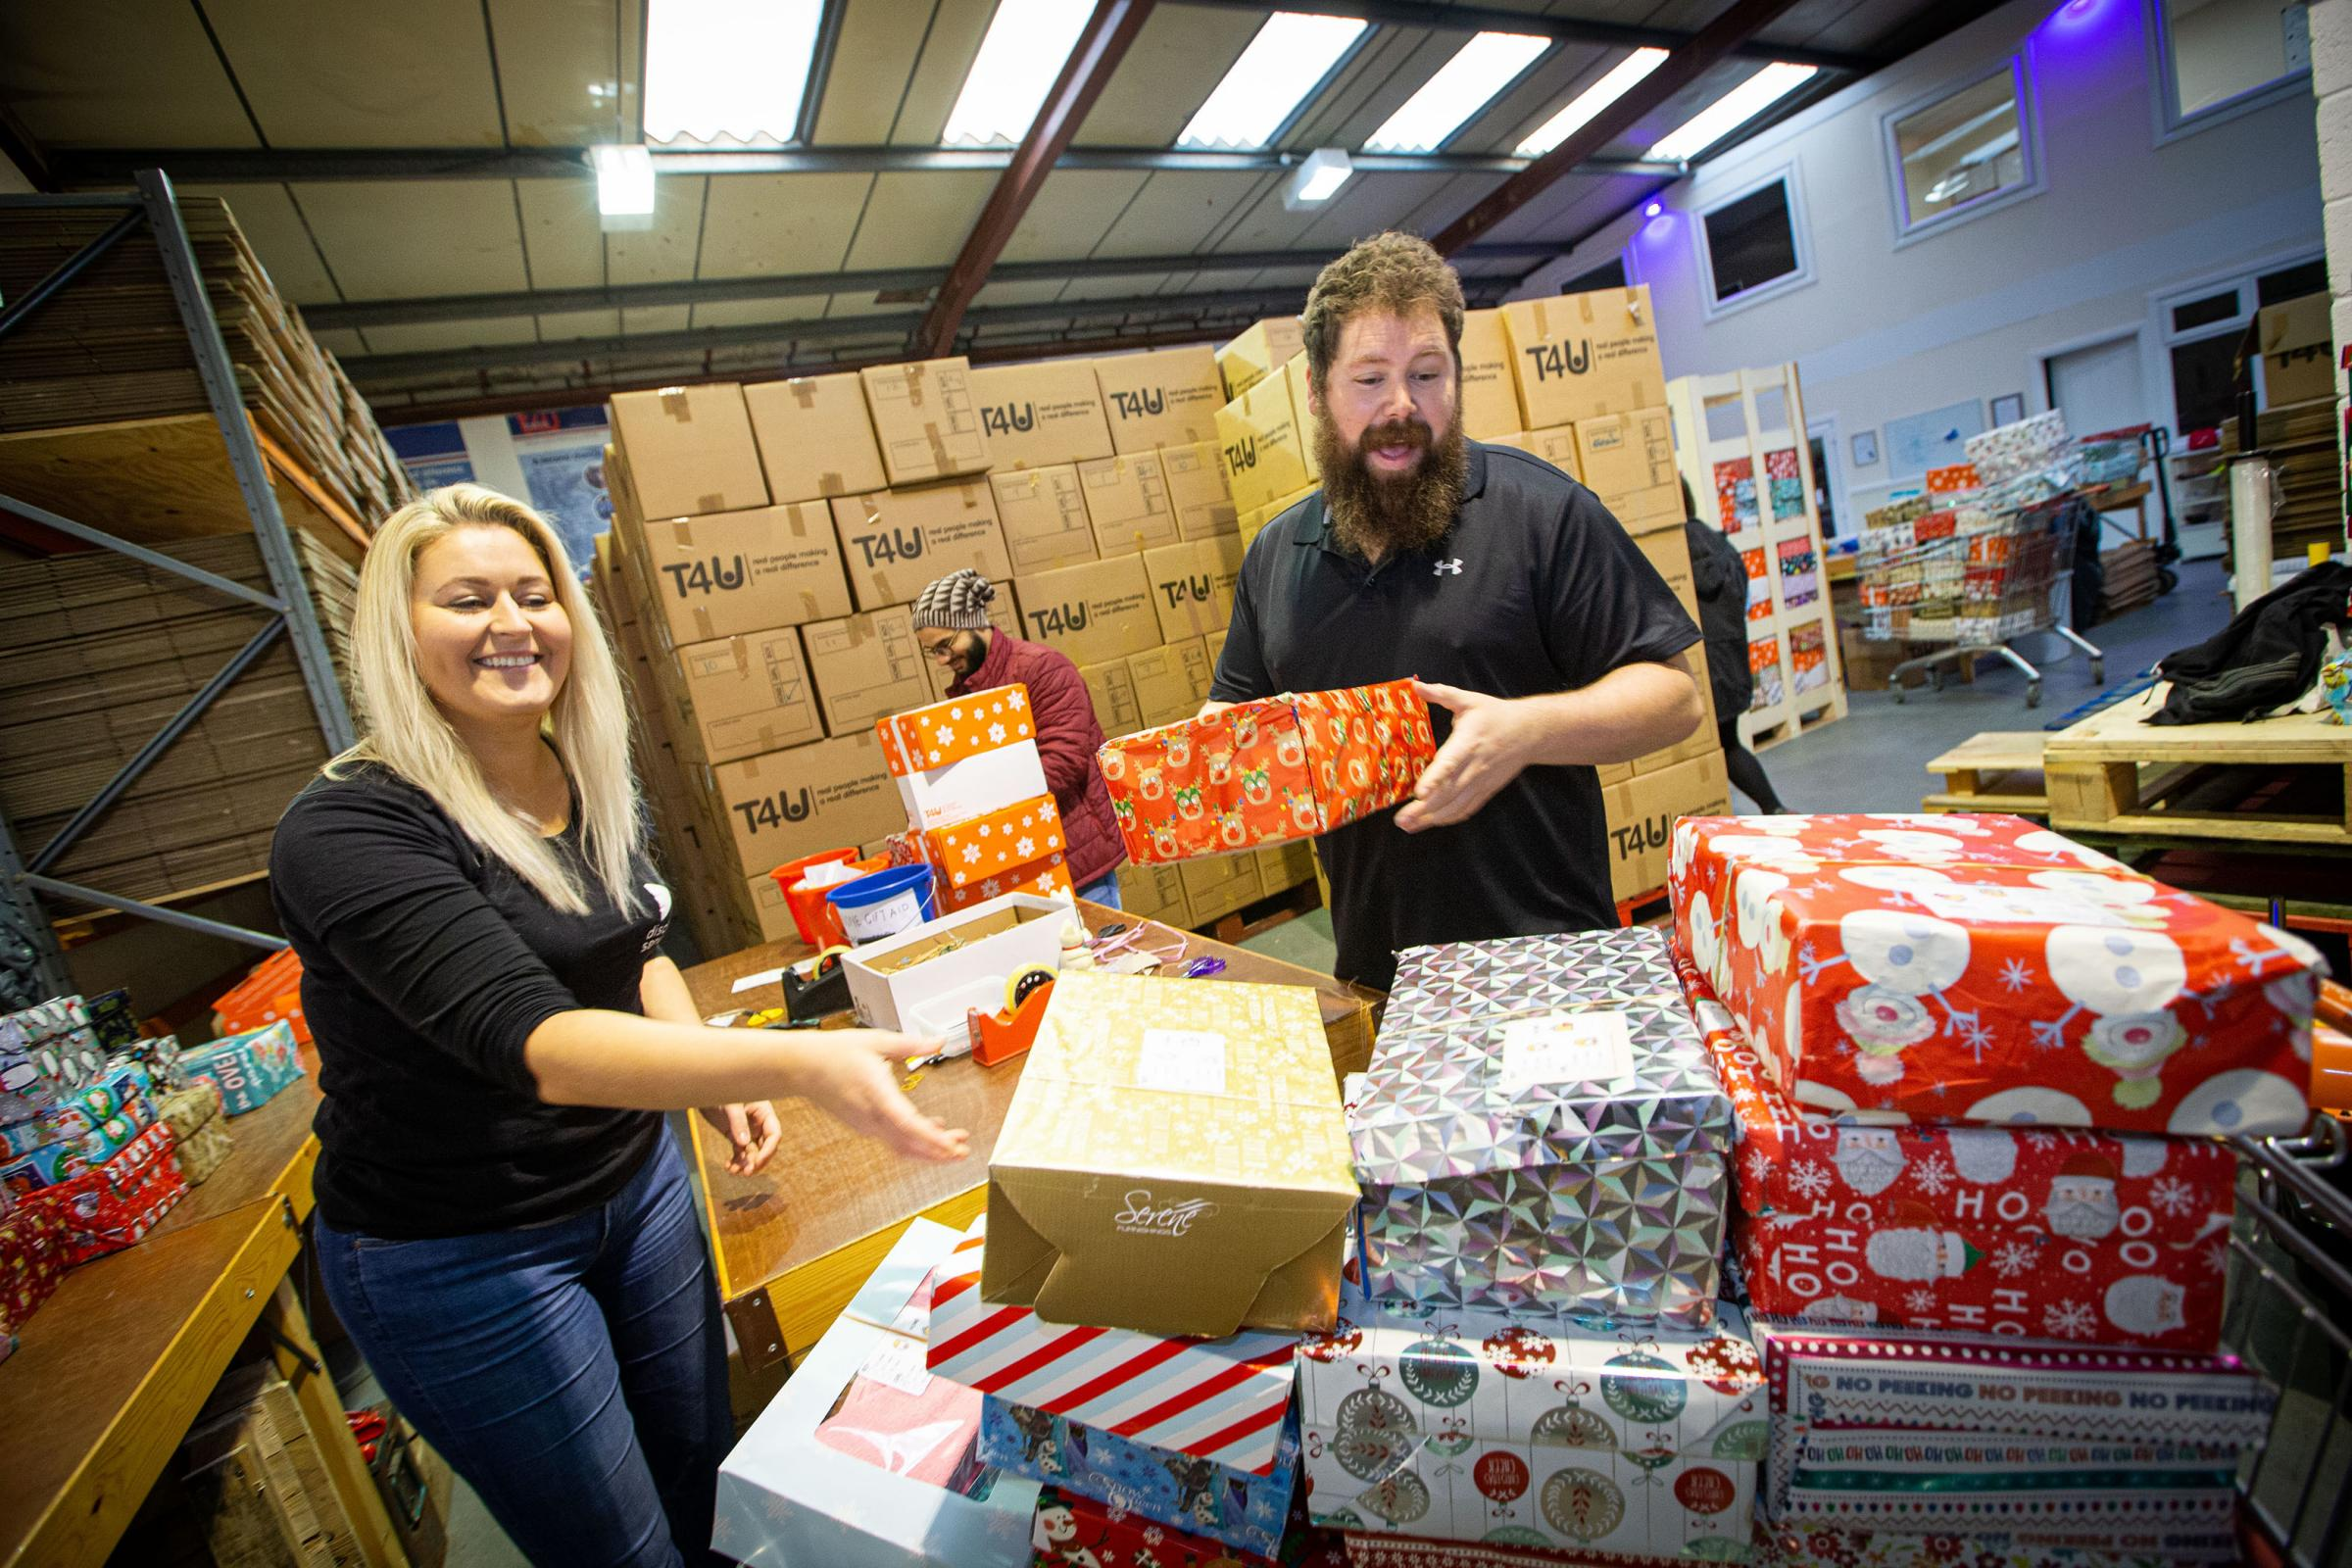 A staggering 60,000 shoeboxes packed and ready to bring Christmas magic to poverty-stricken children